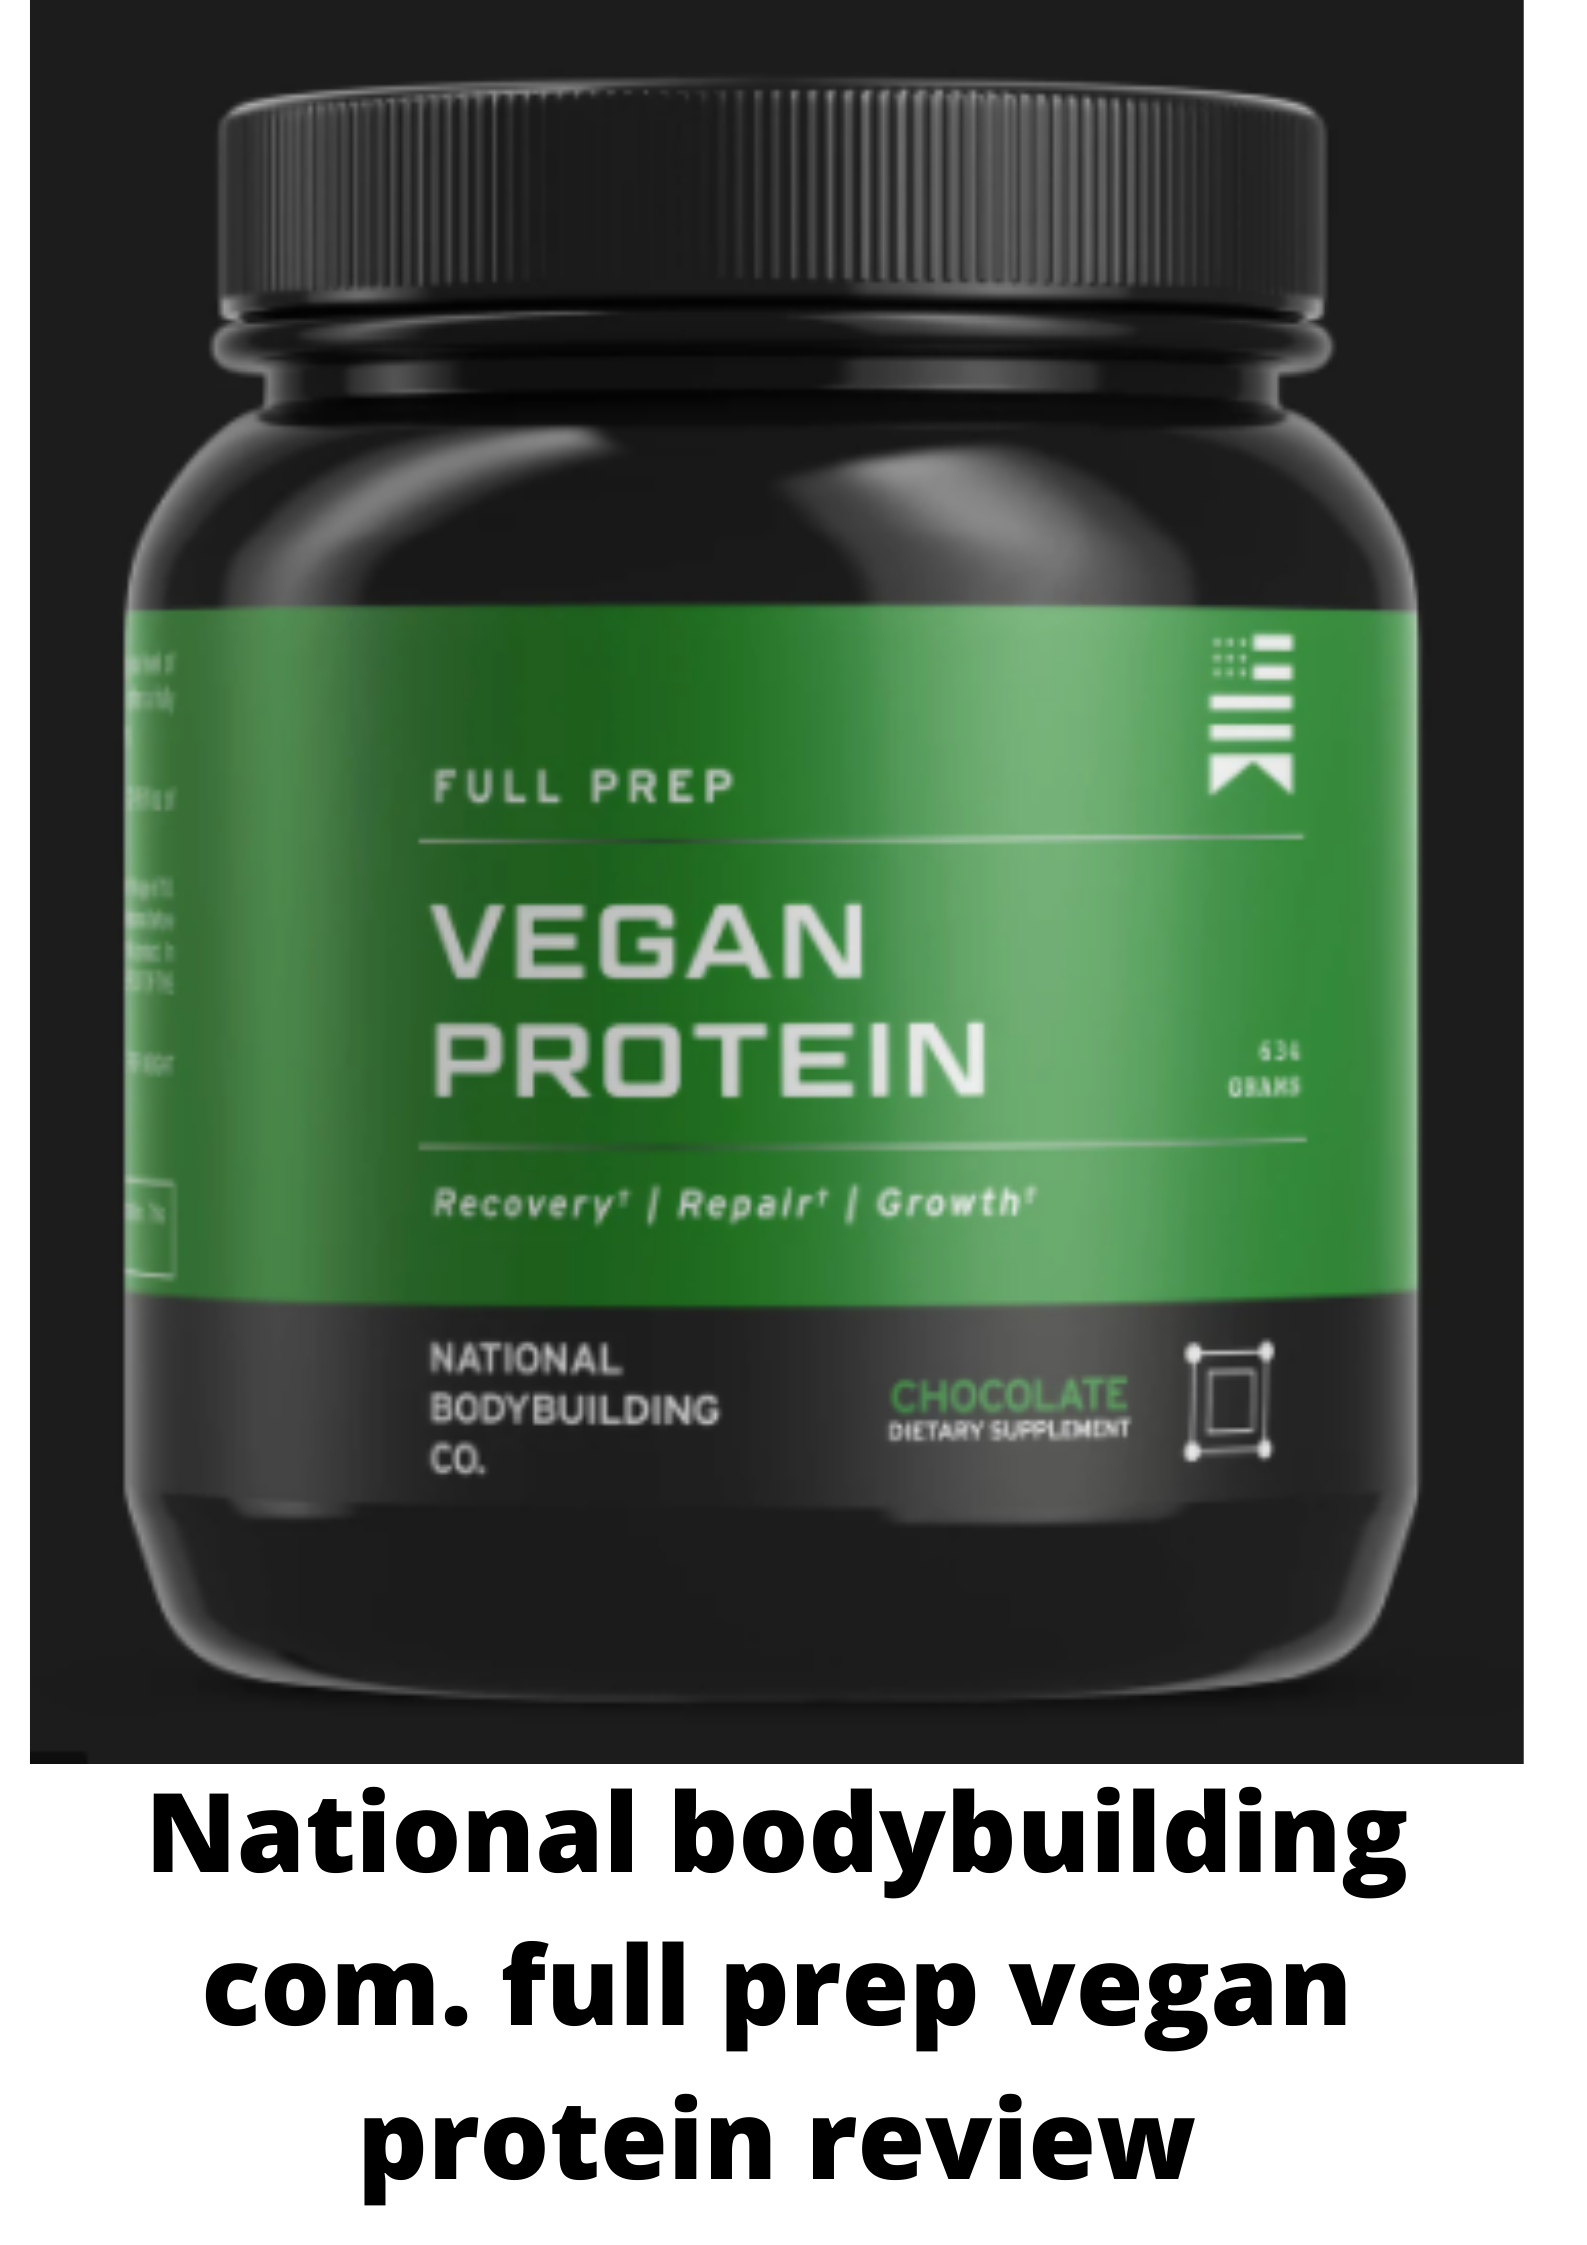 national bodybuilding com. full prep vegan protein review